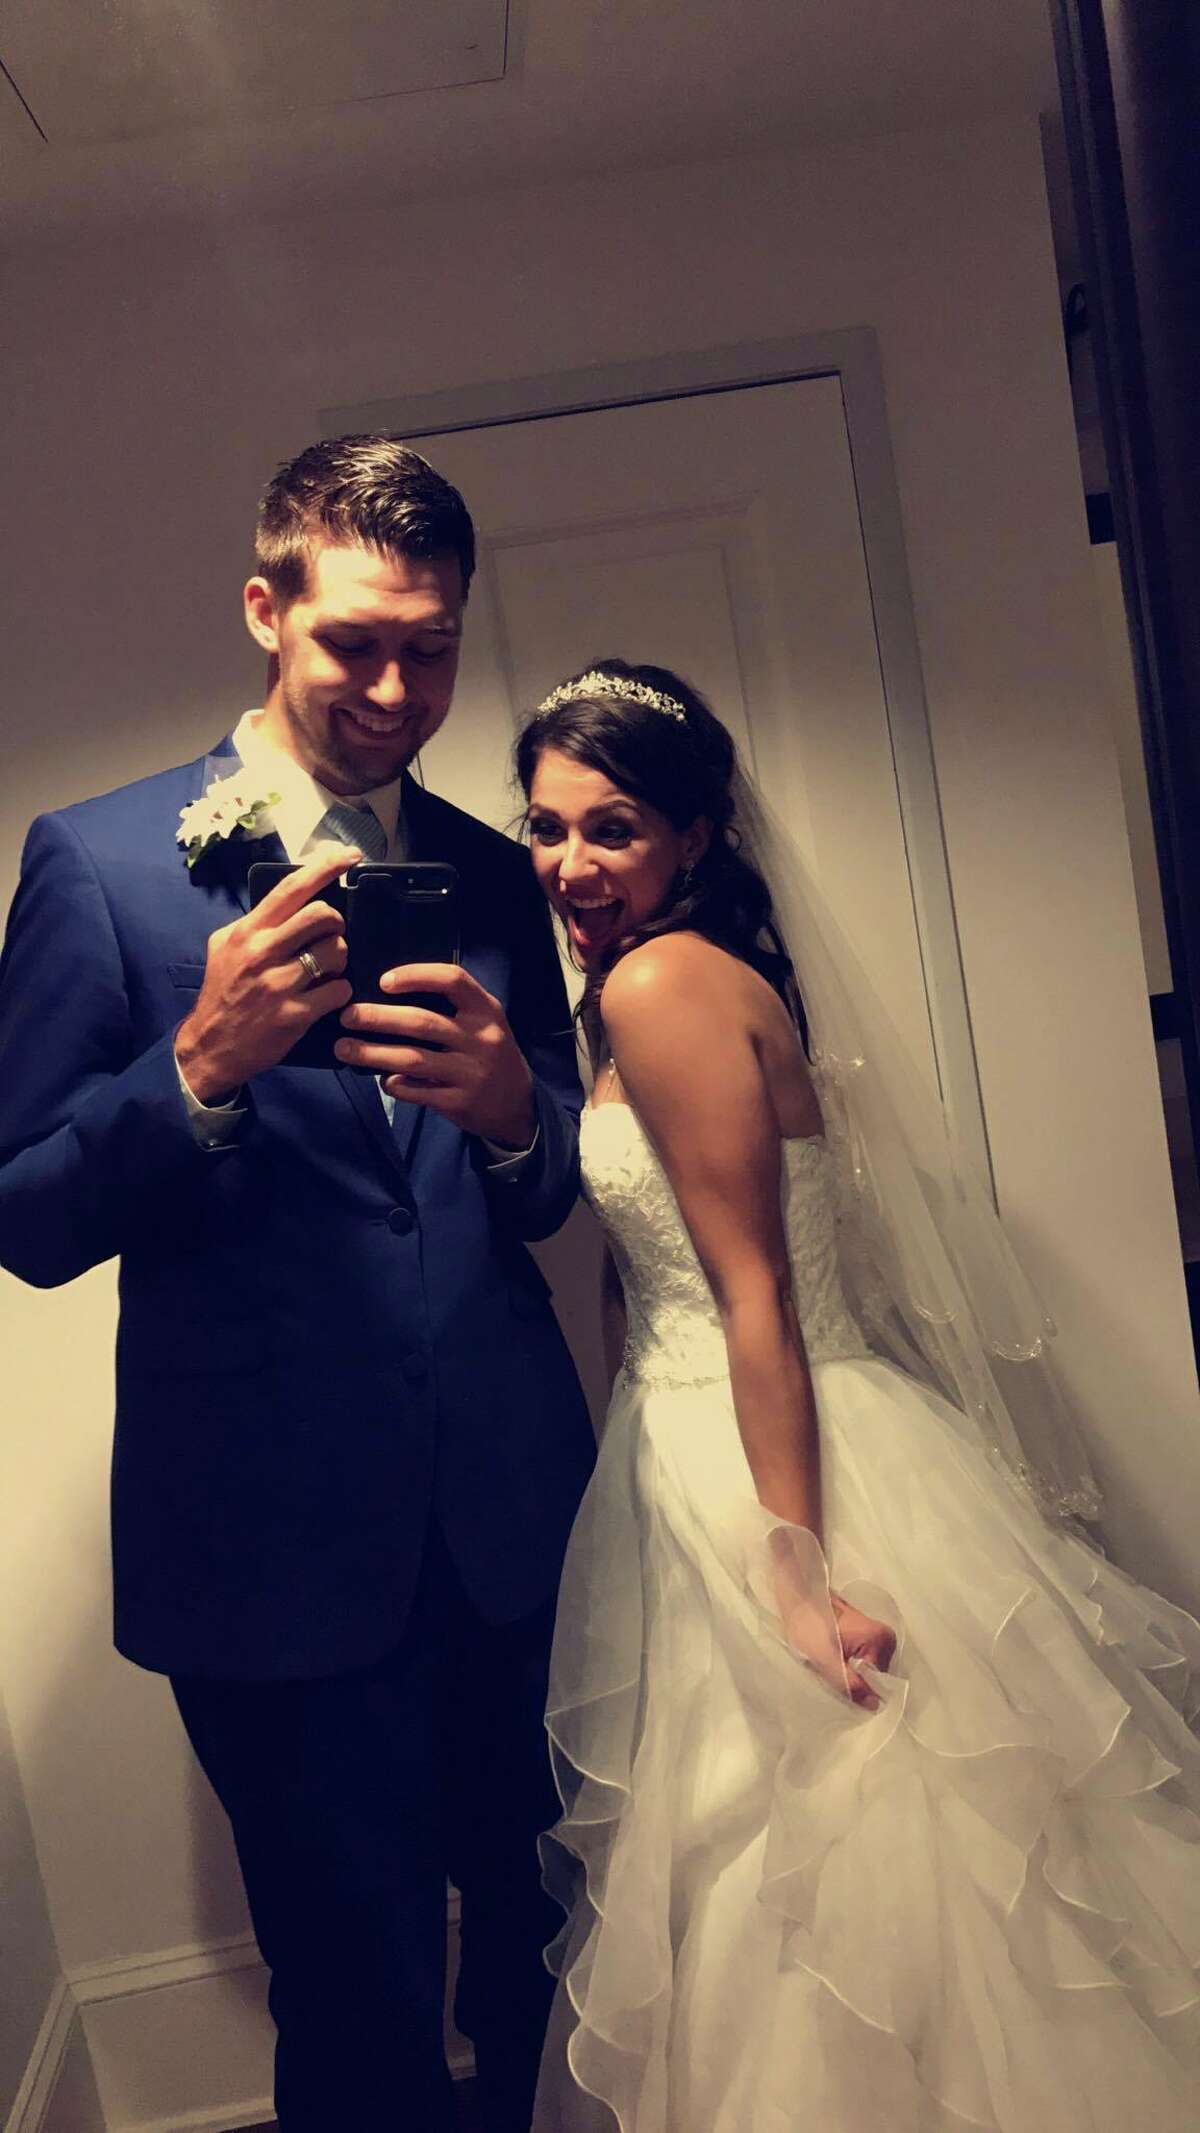 Newlyweds Rebekah and Tim Muenzler tied the knot - and became Twitter hits - last Saturday. The two got married in the Hill Country, then stopped by an Alamo City Whataburger for a midnight snack. Unbeknownst to them, the teen paparazzi was waiting to make them famous on Twitter.